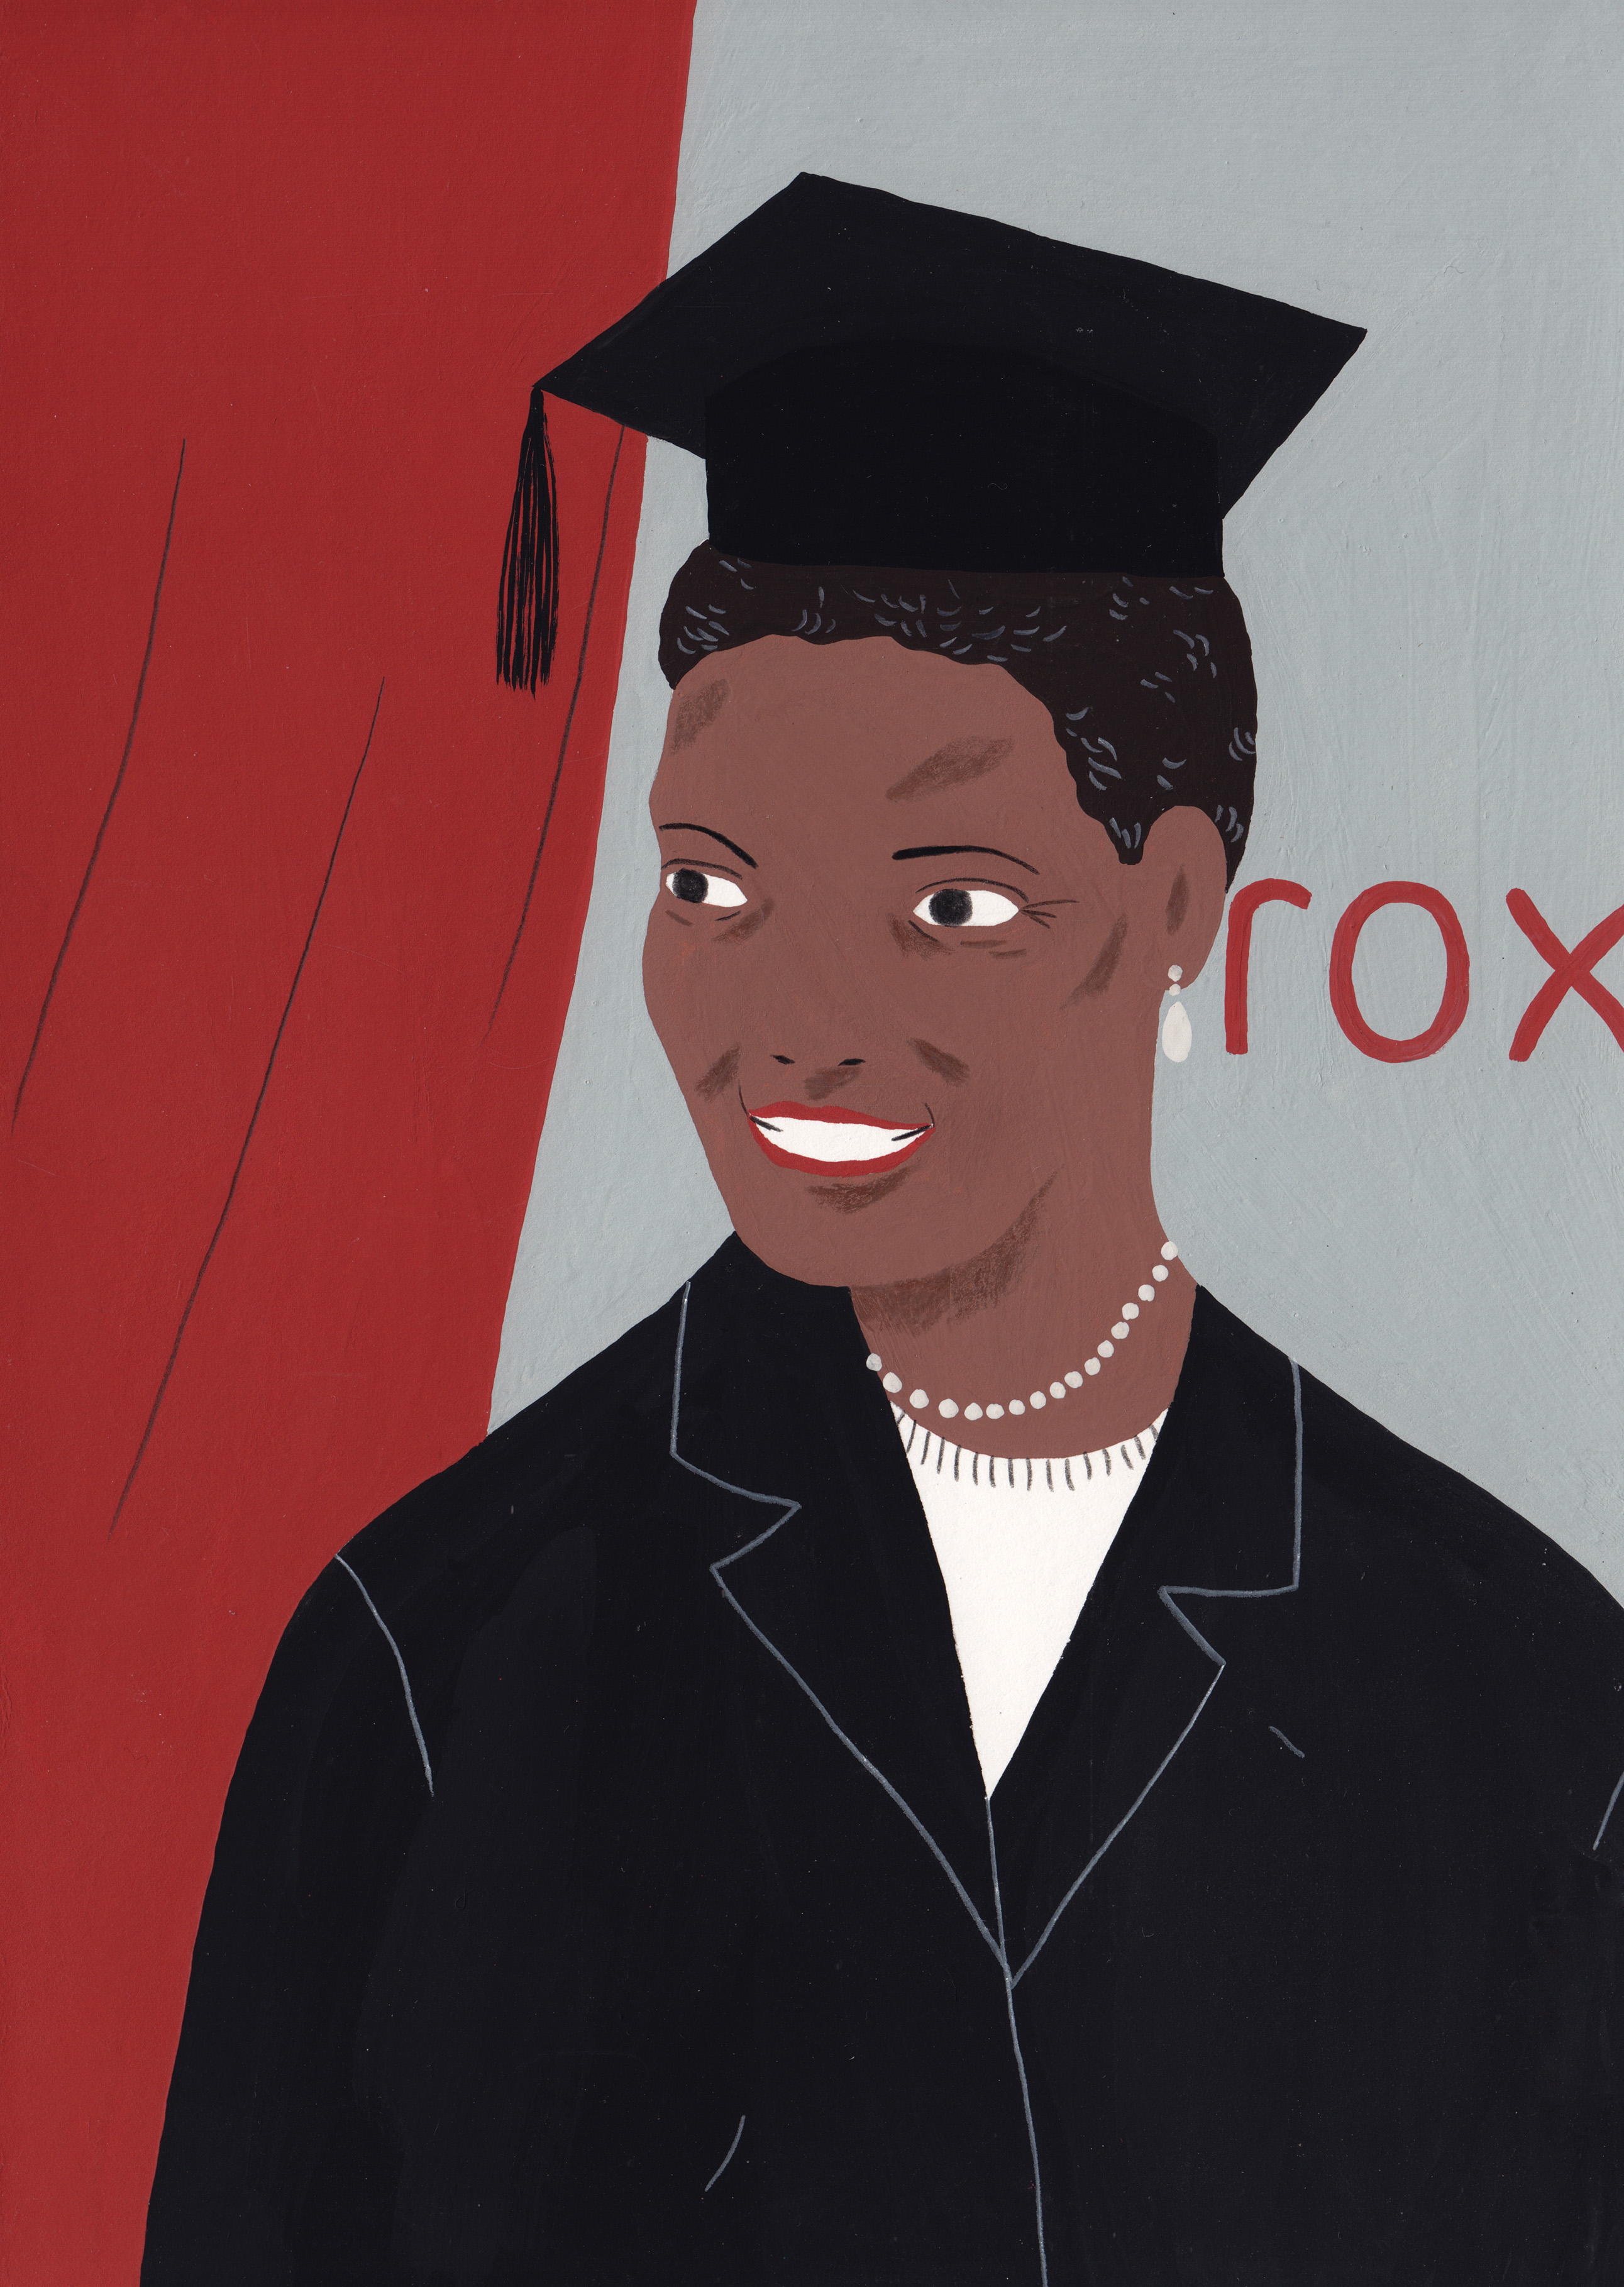 Illustration of Ursula Burns the first black woman to head a Fortune 500 company as CEO of Xerox